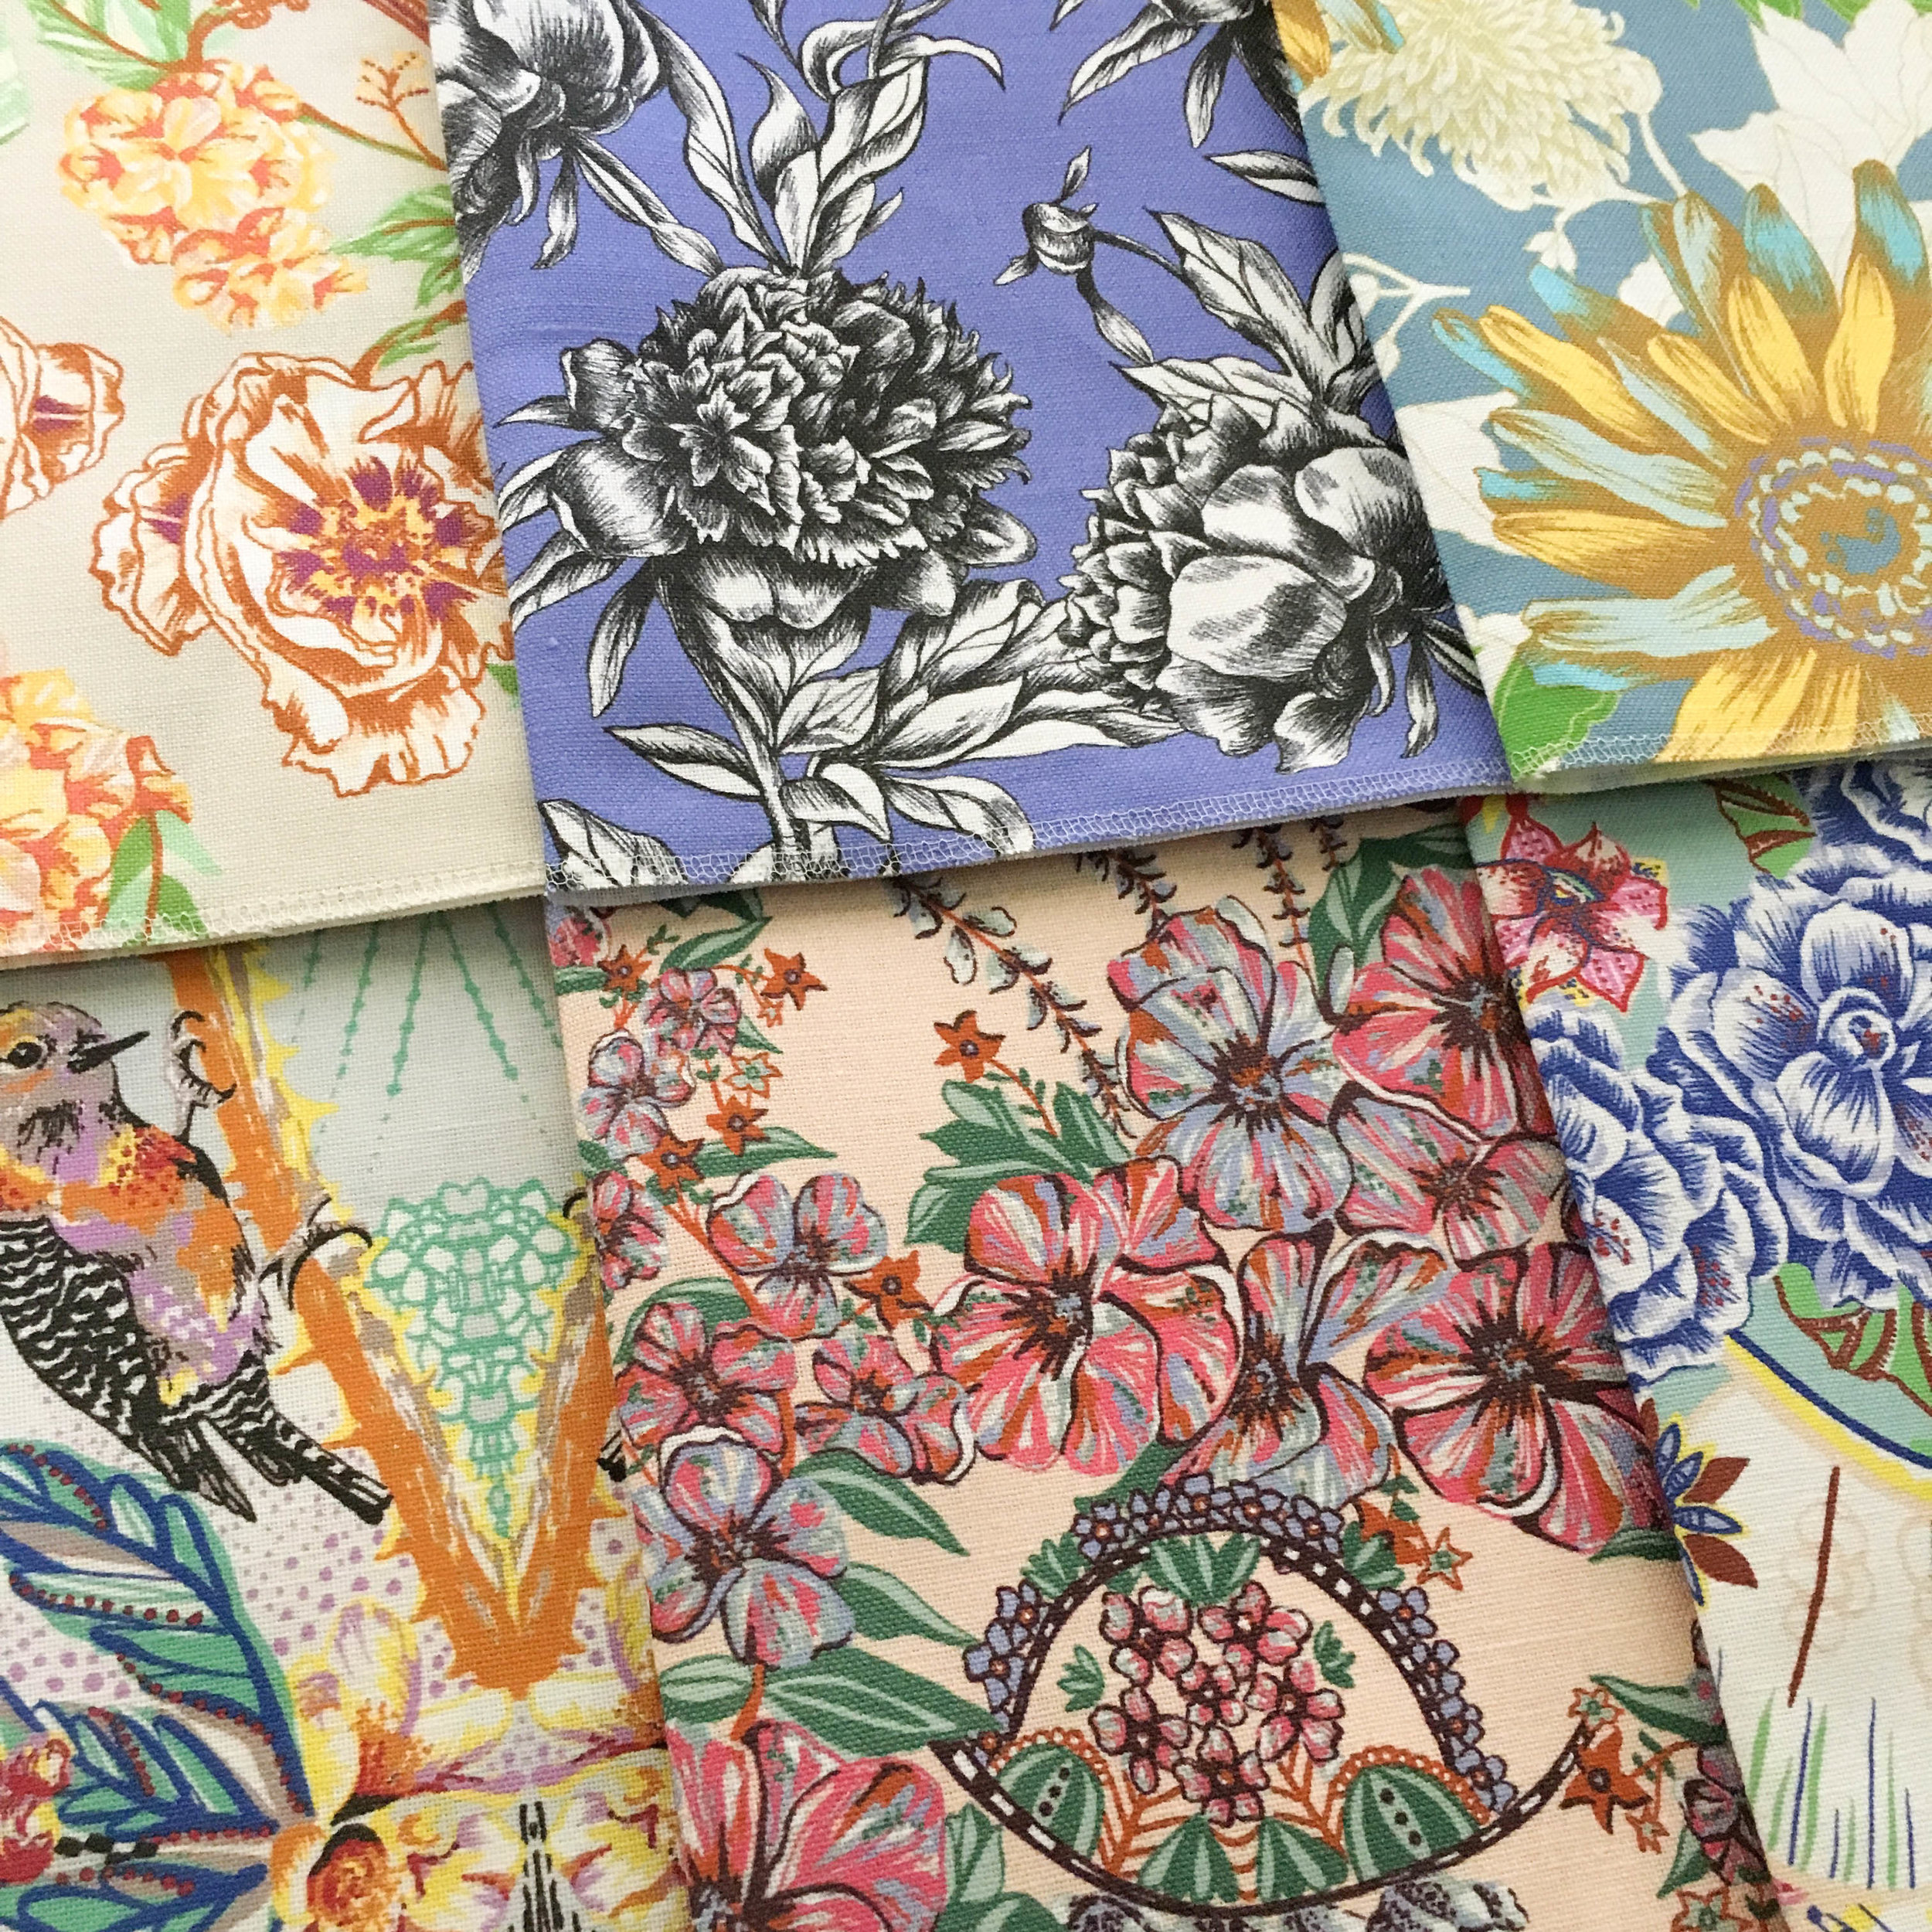 Fabric by the yard in bright, colorful floral patterns